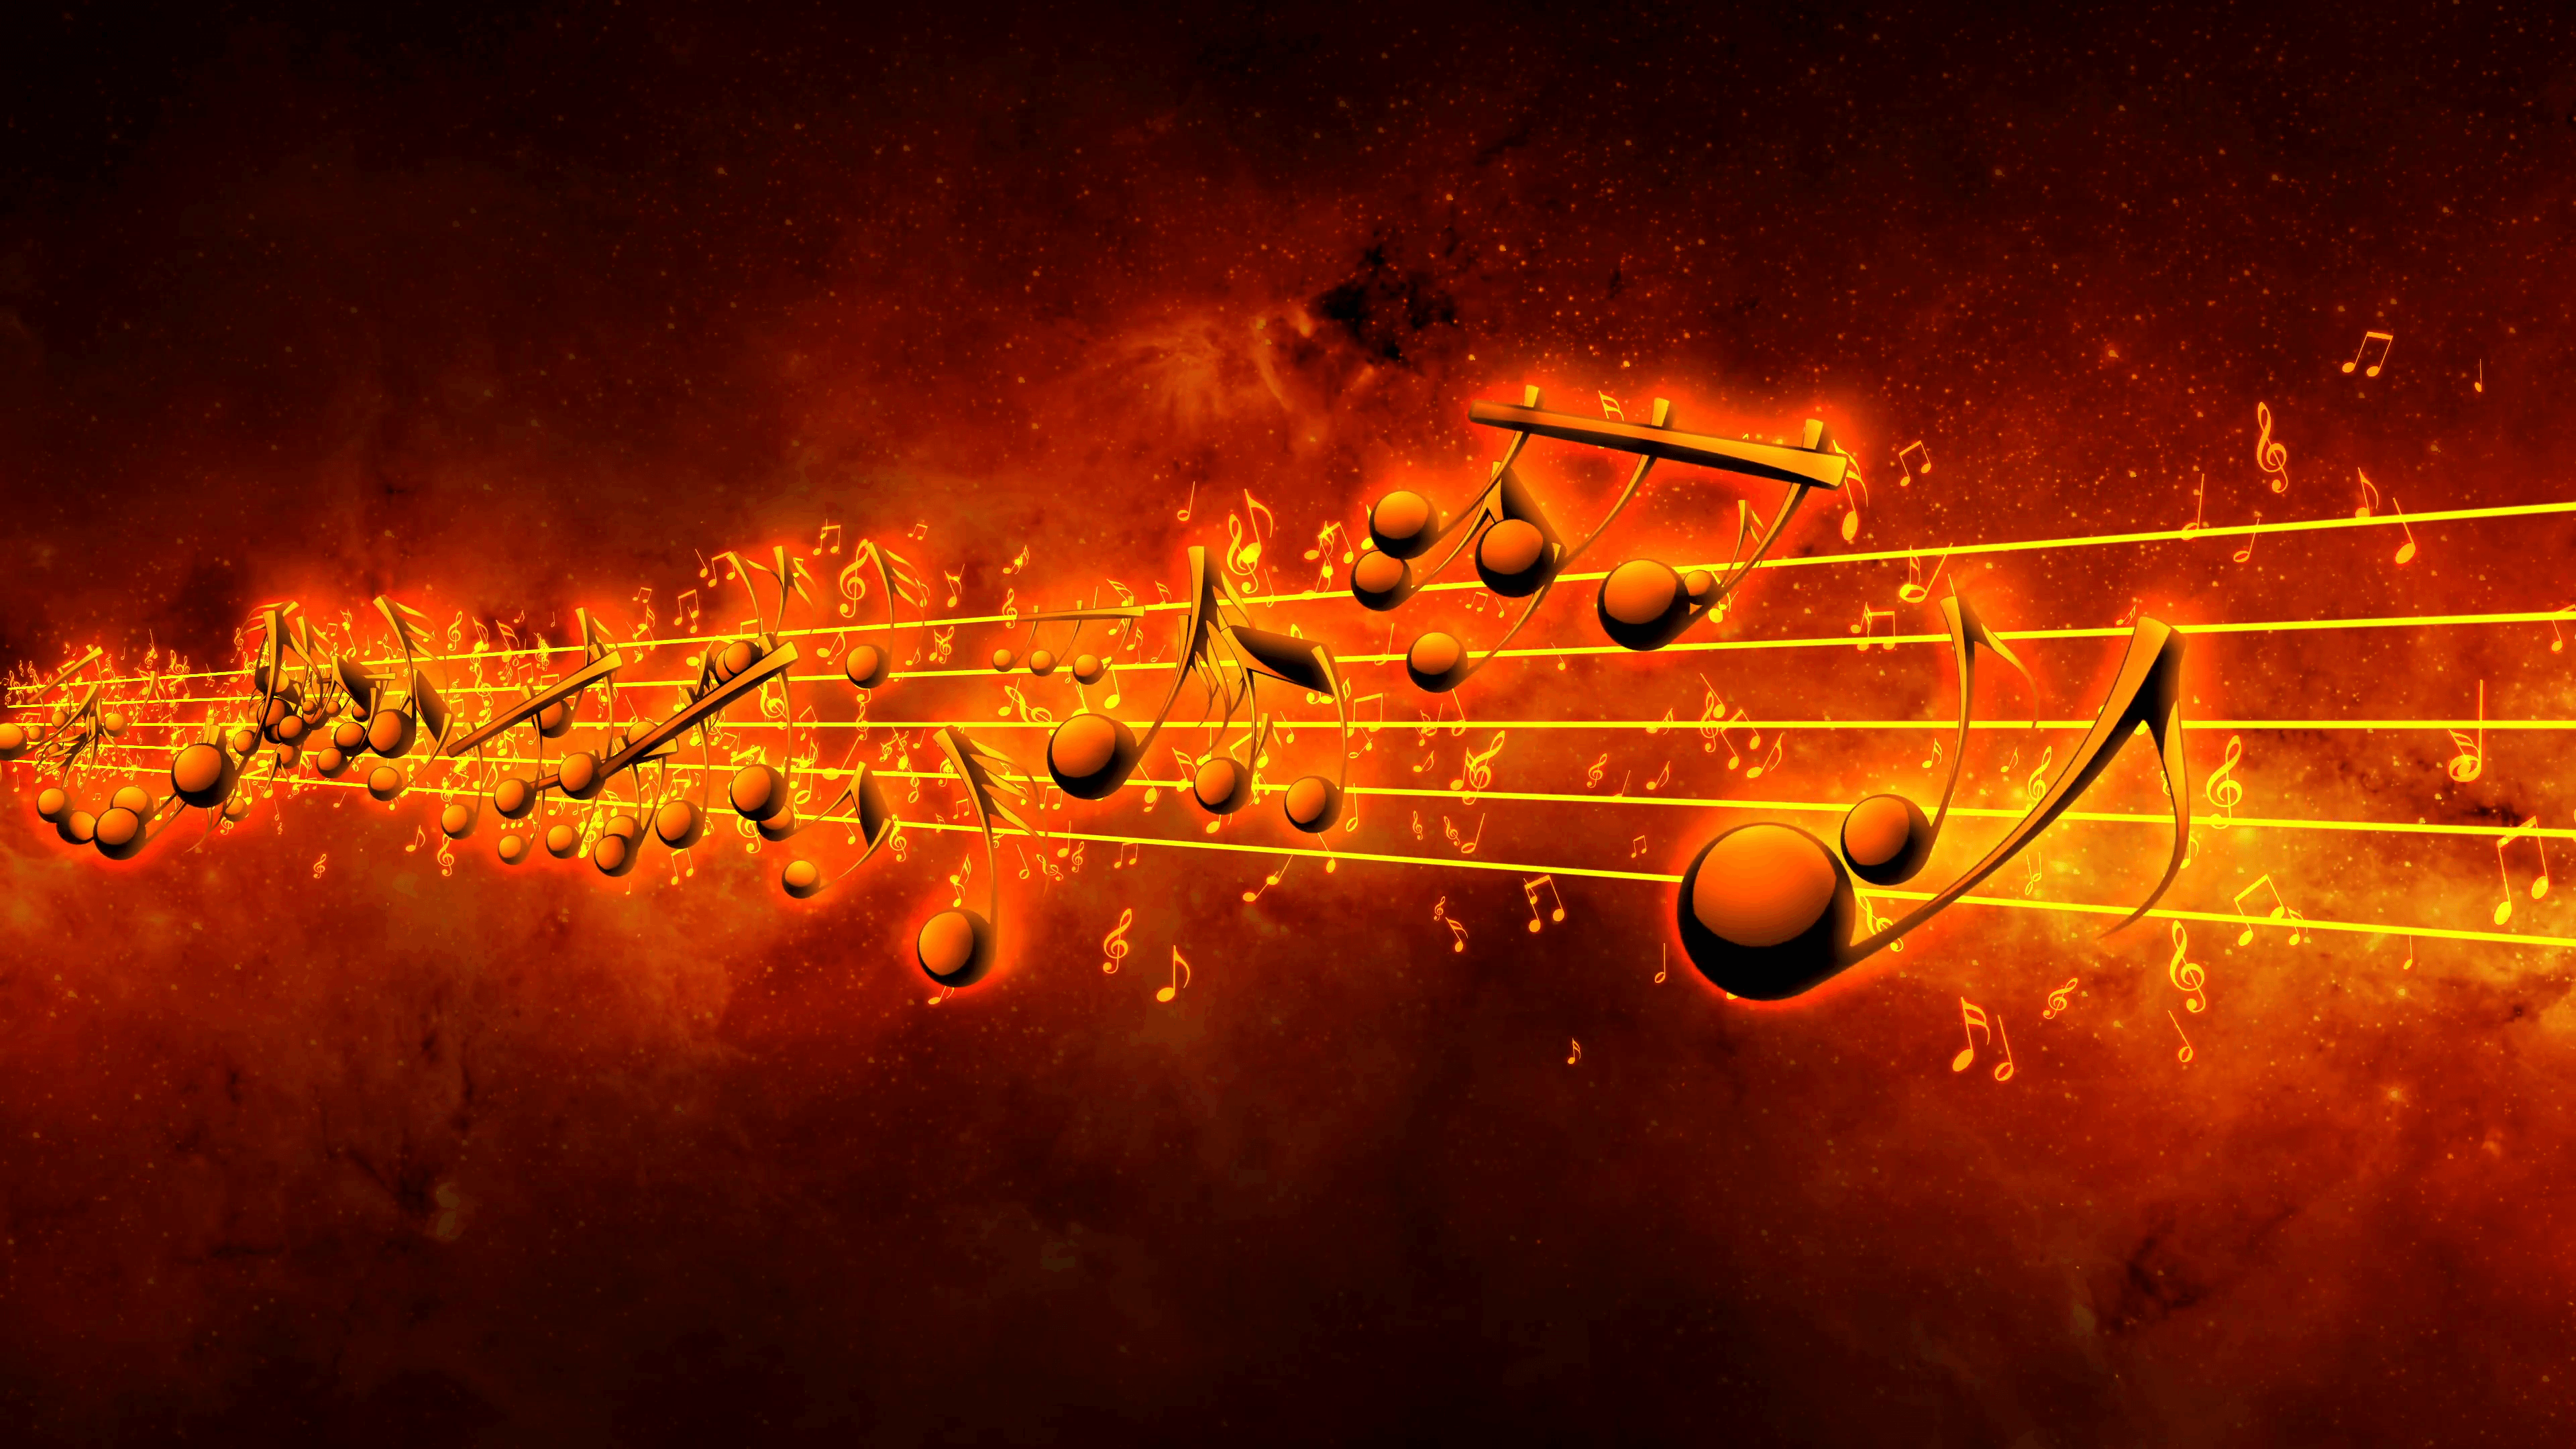 background musical music notes animated backgrounds motion flowing stream flying wallpapercave storyblocks cave wallpapertag